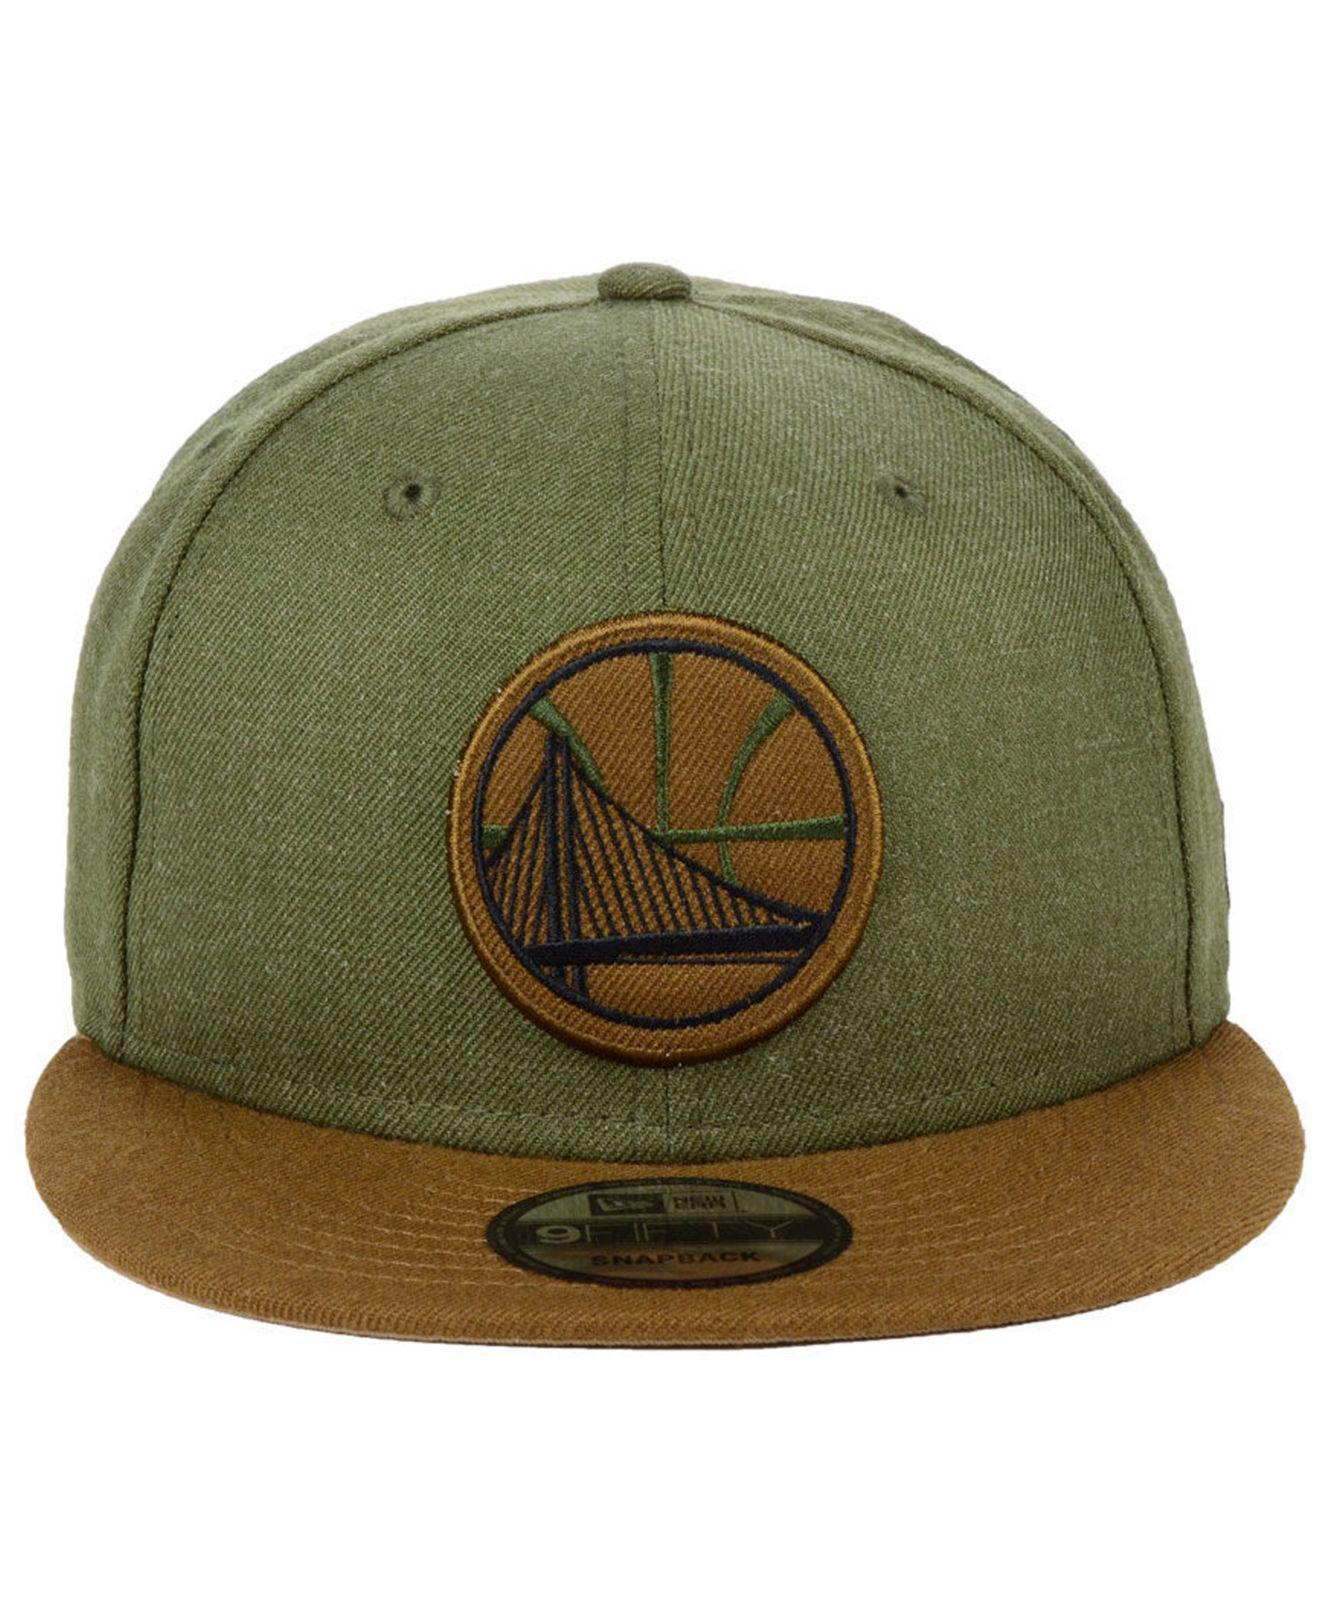 8dbe7167c3c ... new style lyst ktz golden state warriors enlisted 9fifty snapback cap  in green for men 0cdbe